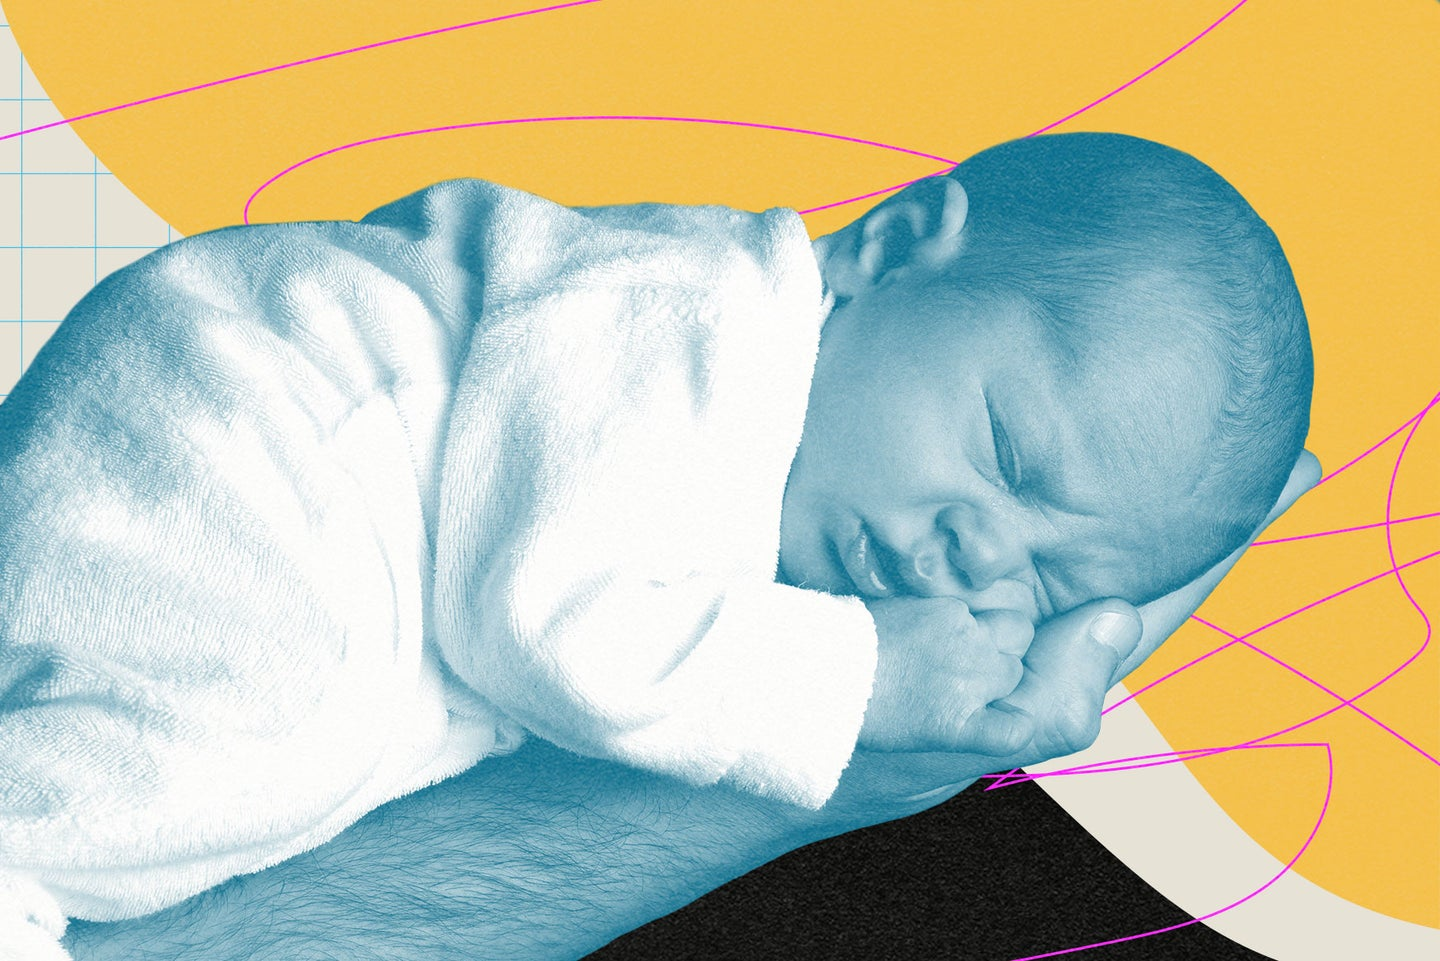 10 absolutely wild facts about babies